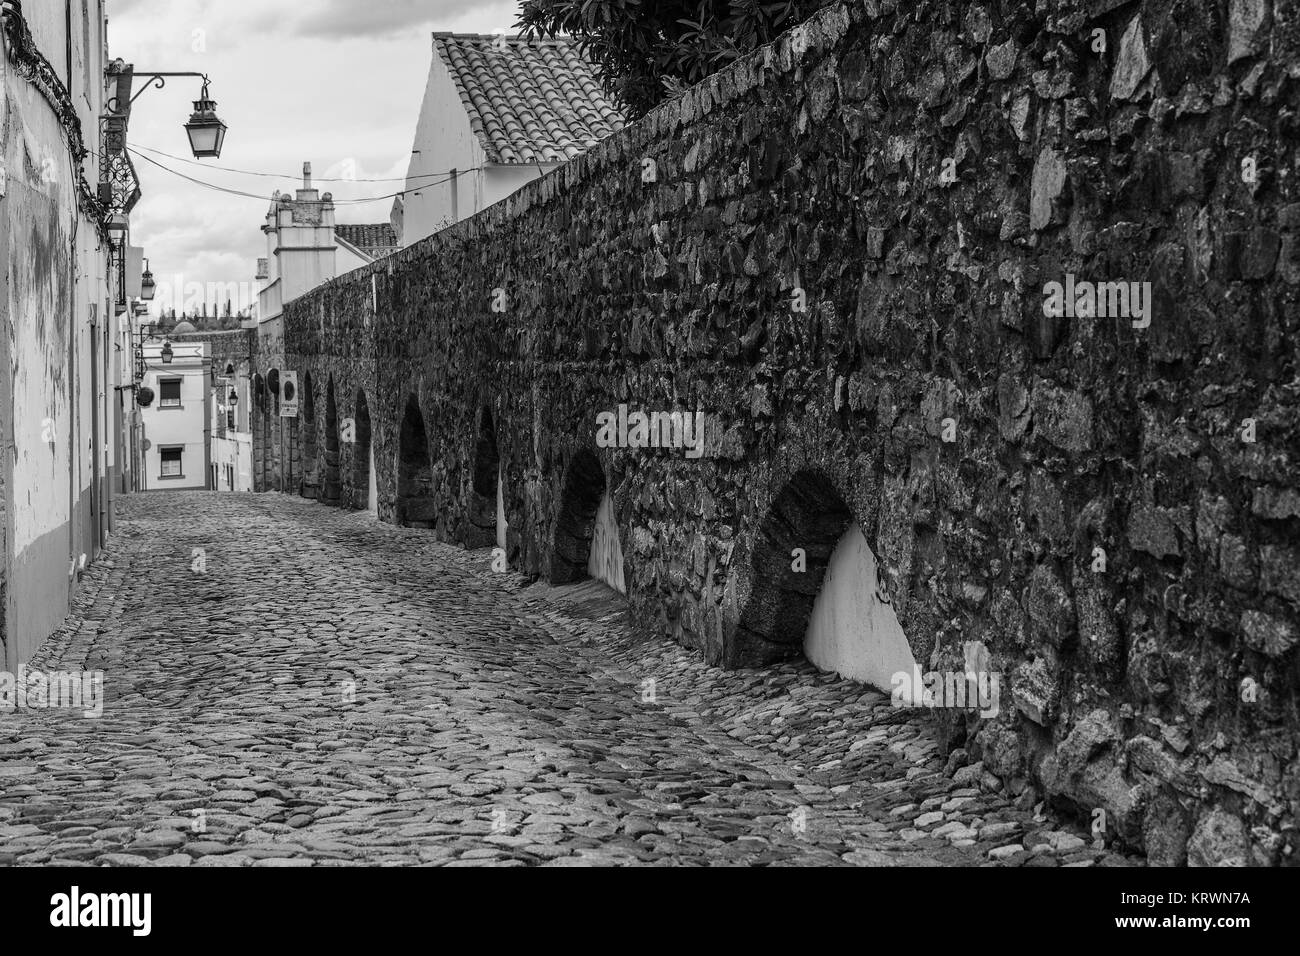 Street in the old town of Evora (Portugal), with the archaeological remains of a Roman aqueduct. - Stock Image